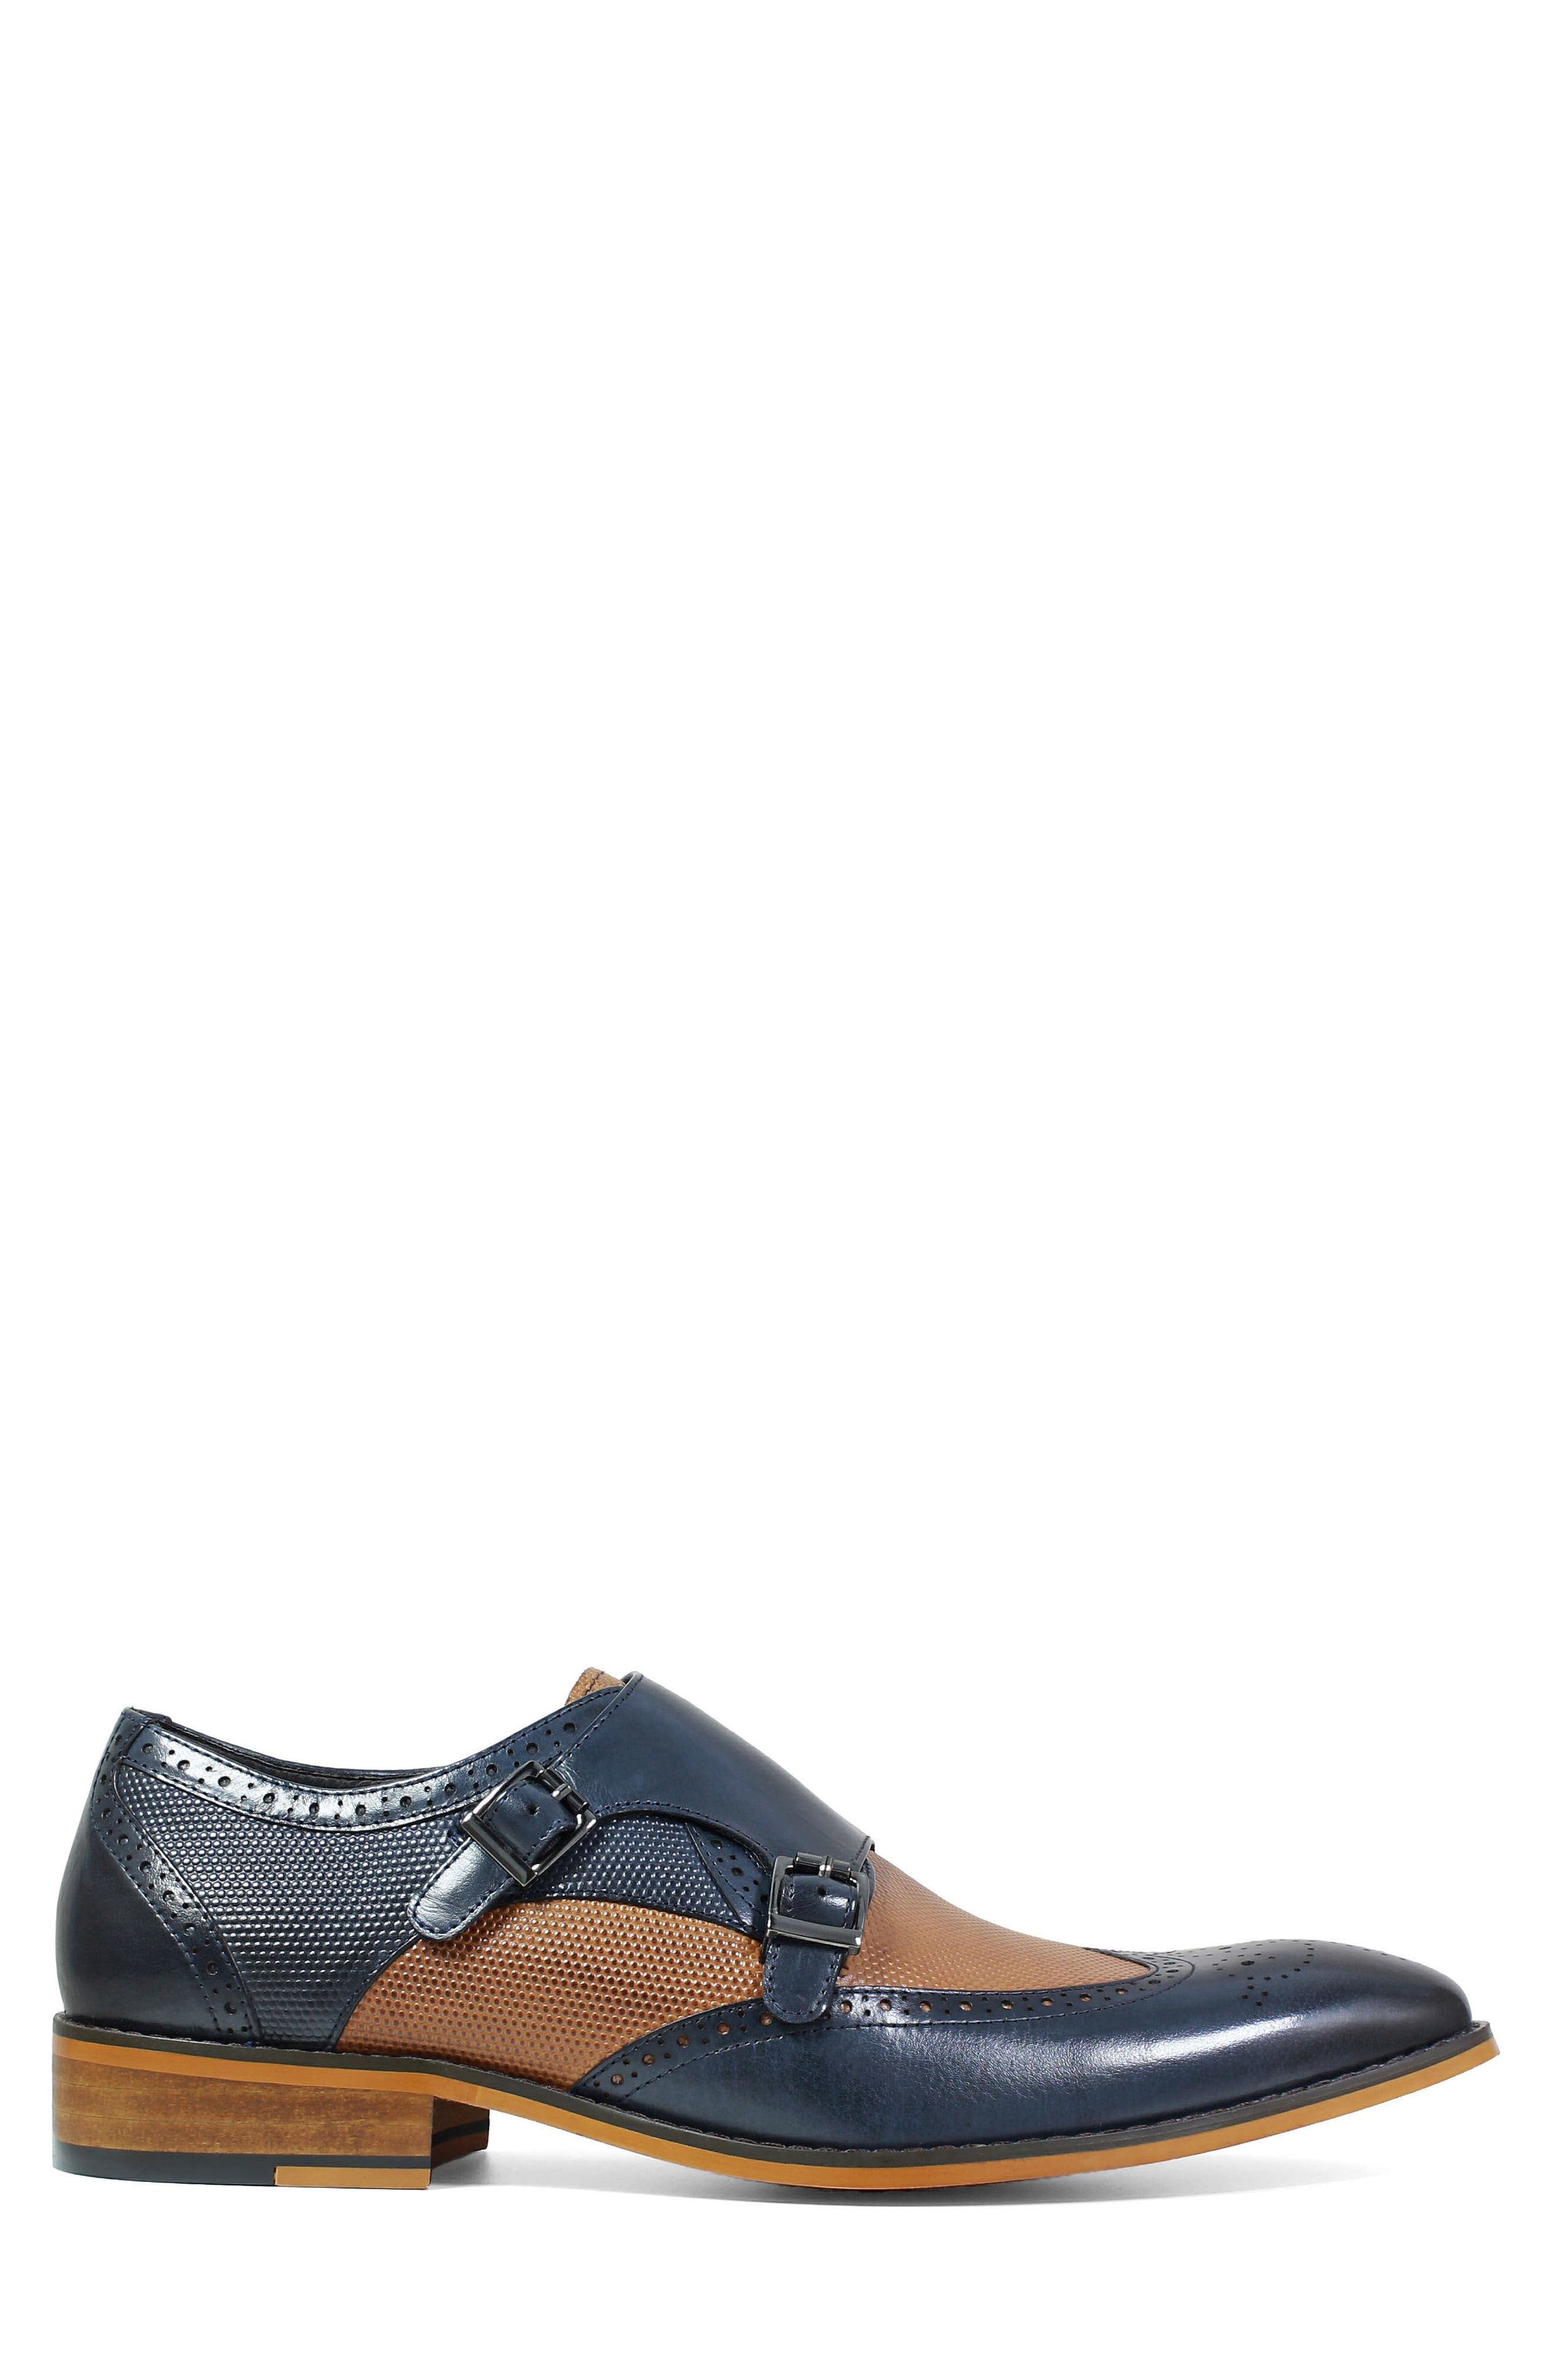 STACY ADAMS, Lavine Wingtip Monk Shoe, Alternate thumbnail 3, color, NAVY AND SADDLE TAN LEATHER